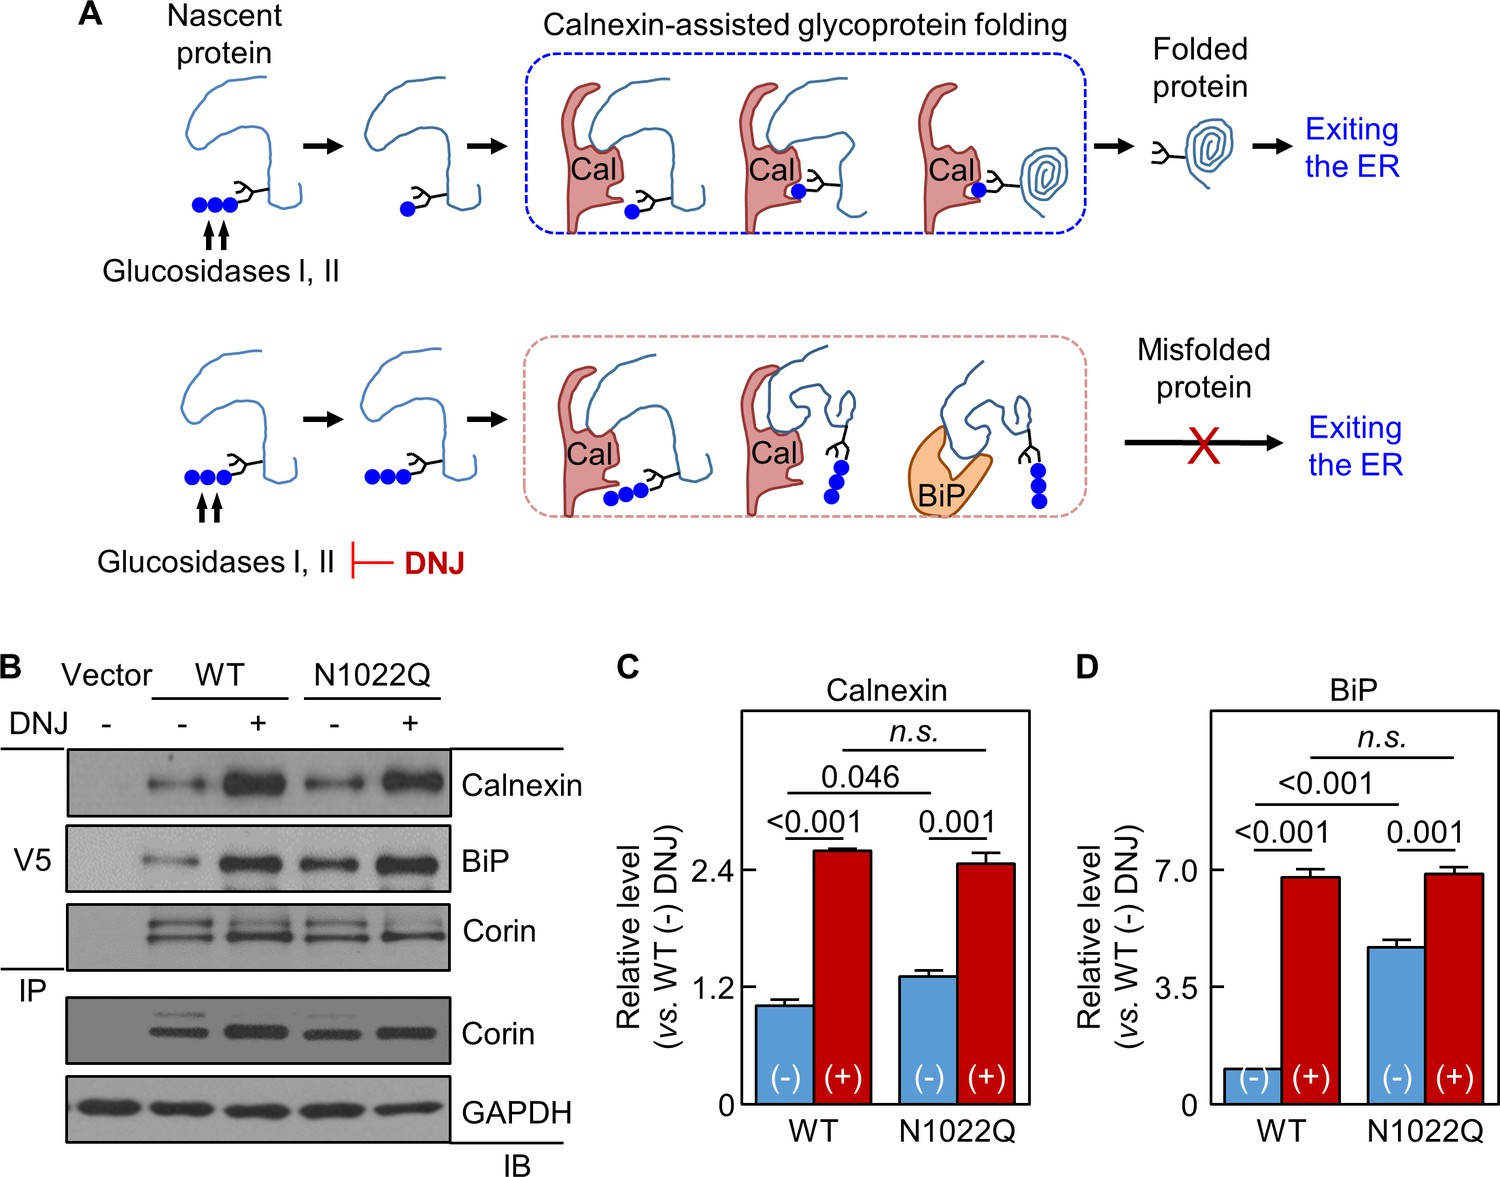 N-glycosylation in the protease domain of trypsin-like